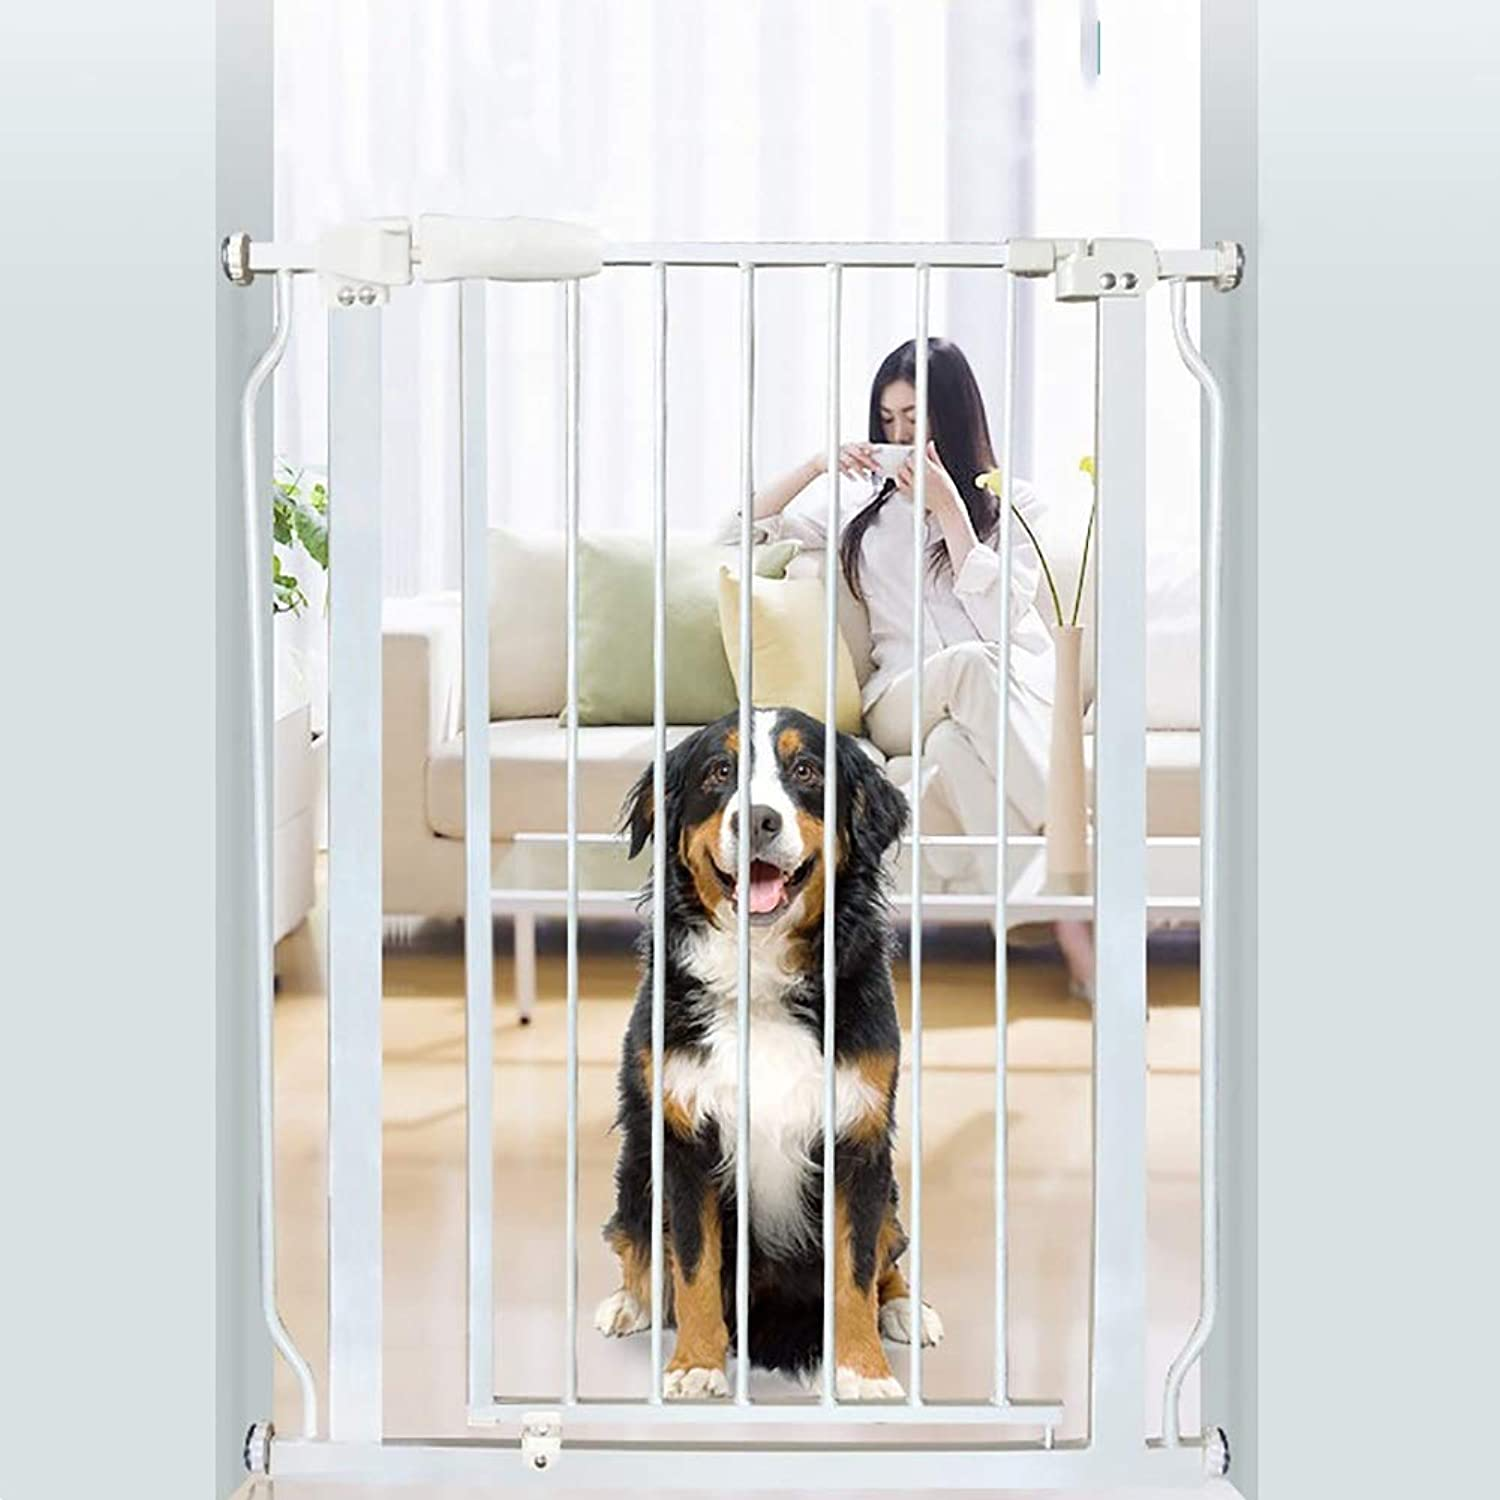 Baby Gates Pressure Mounts Baby Gates with Walkthrough Dog Door, 92cm Extra Tall White Safety Pet Gate for Stairs & Hallway, 74265.9cm Width (Size   Width 7485.9cm)